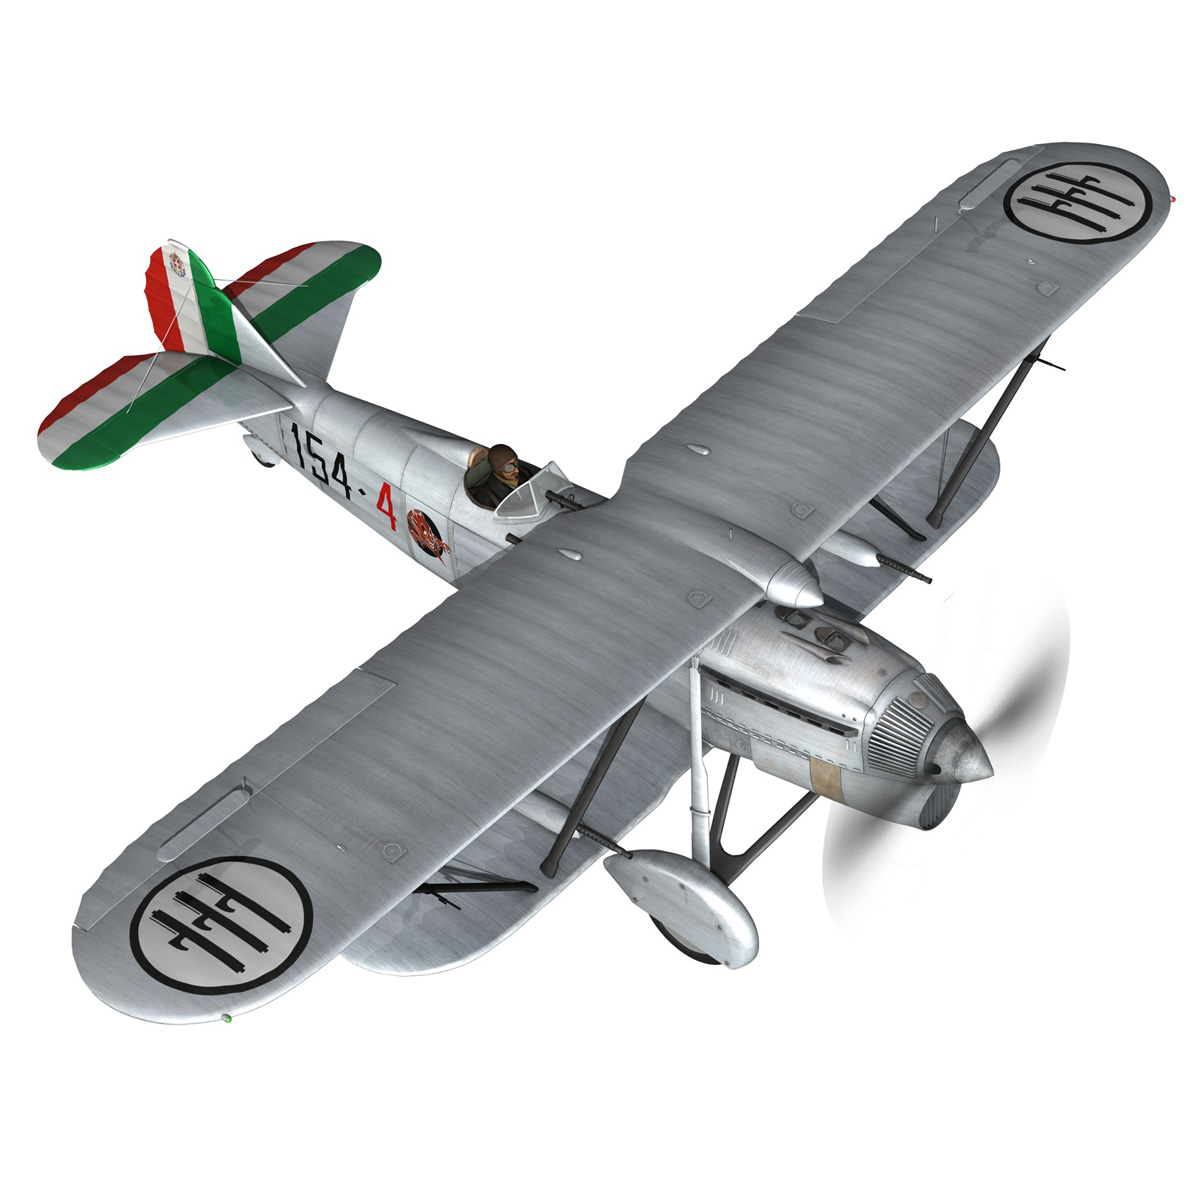 fiat cr.32 – italy airforce – 154 squadriglia 3d model fbx c4d lwo obj 268130